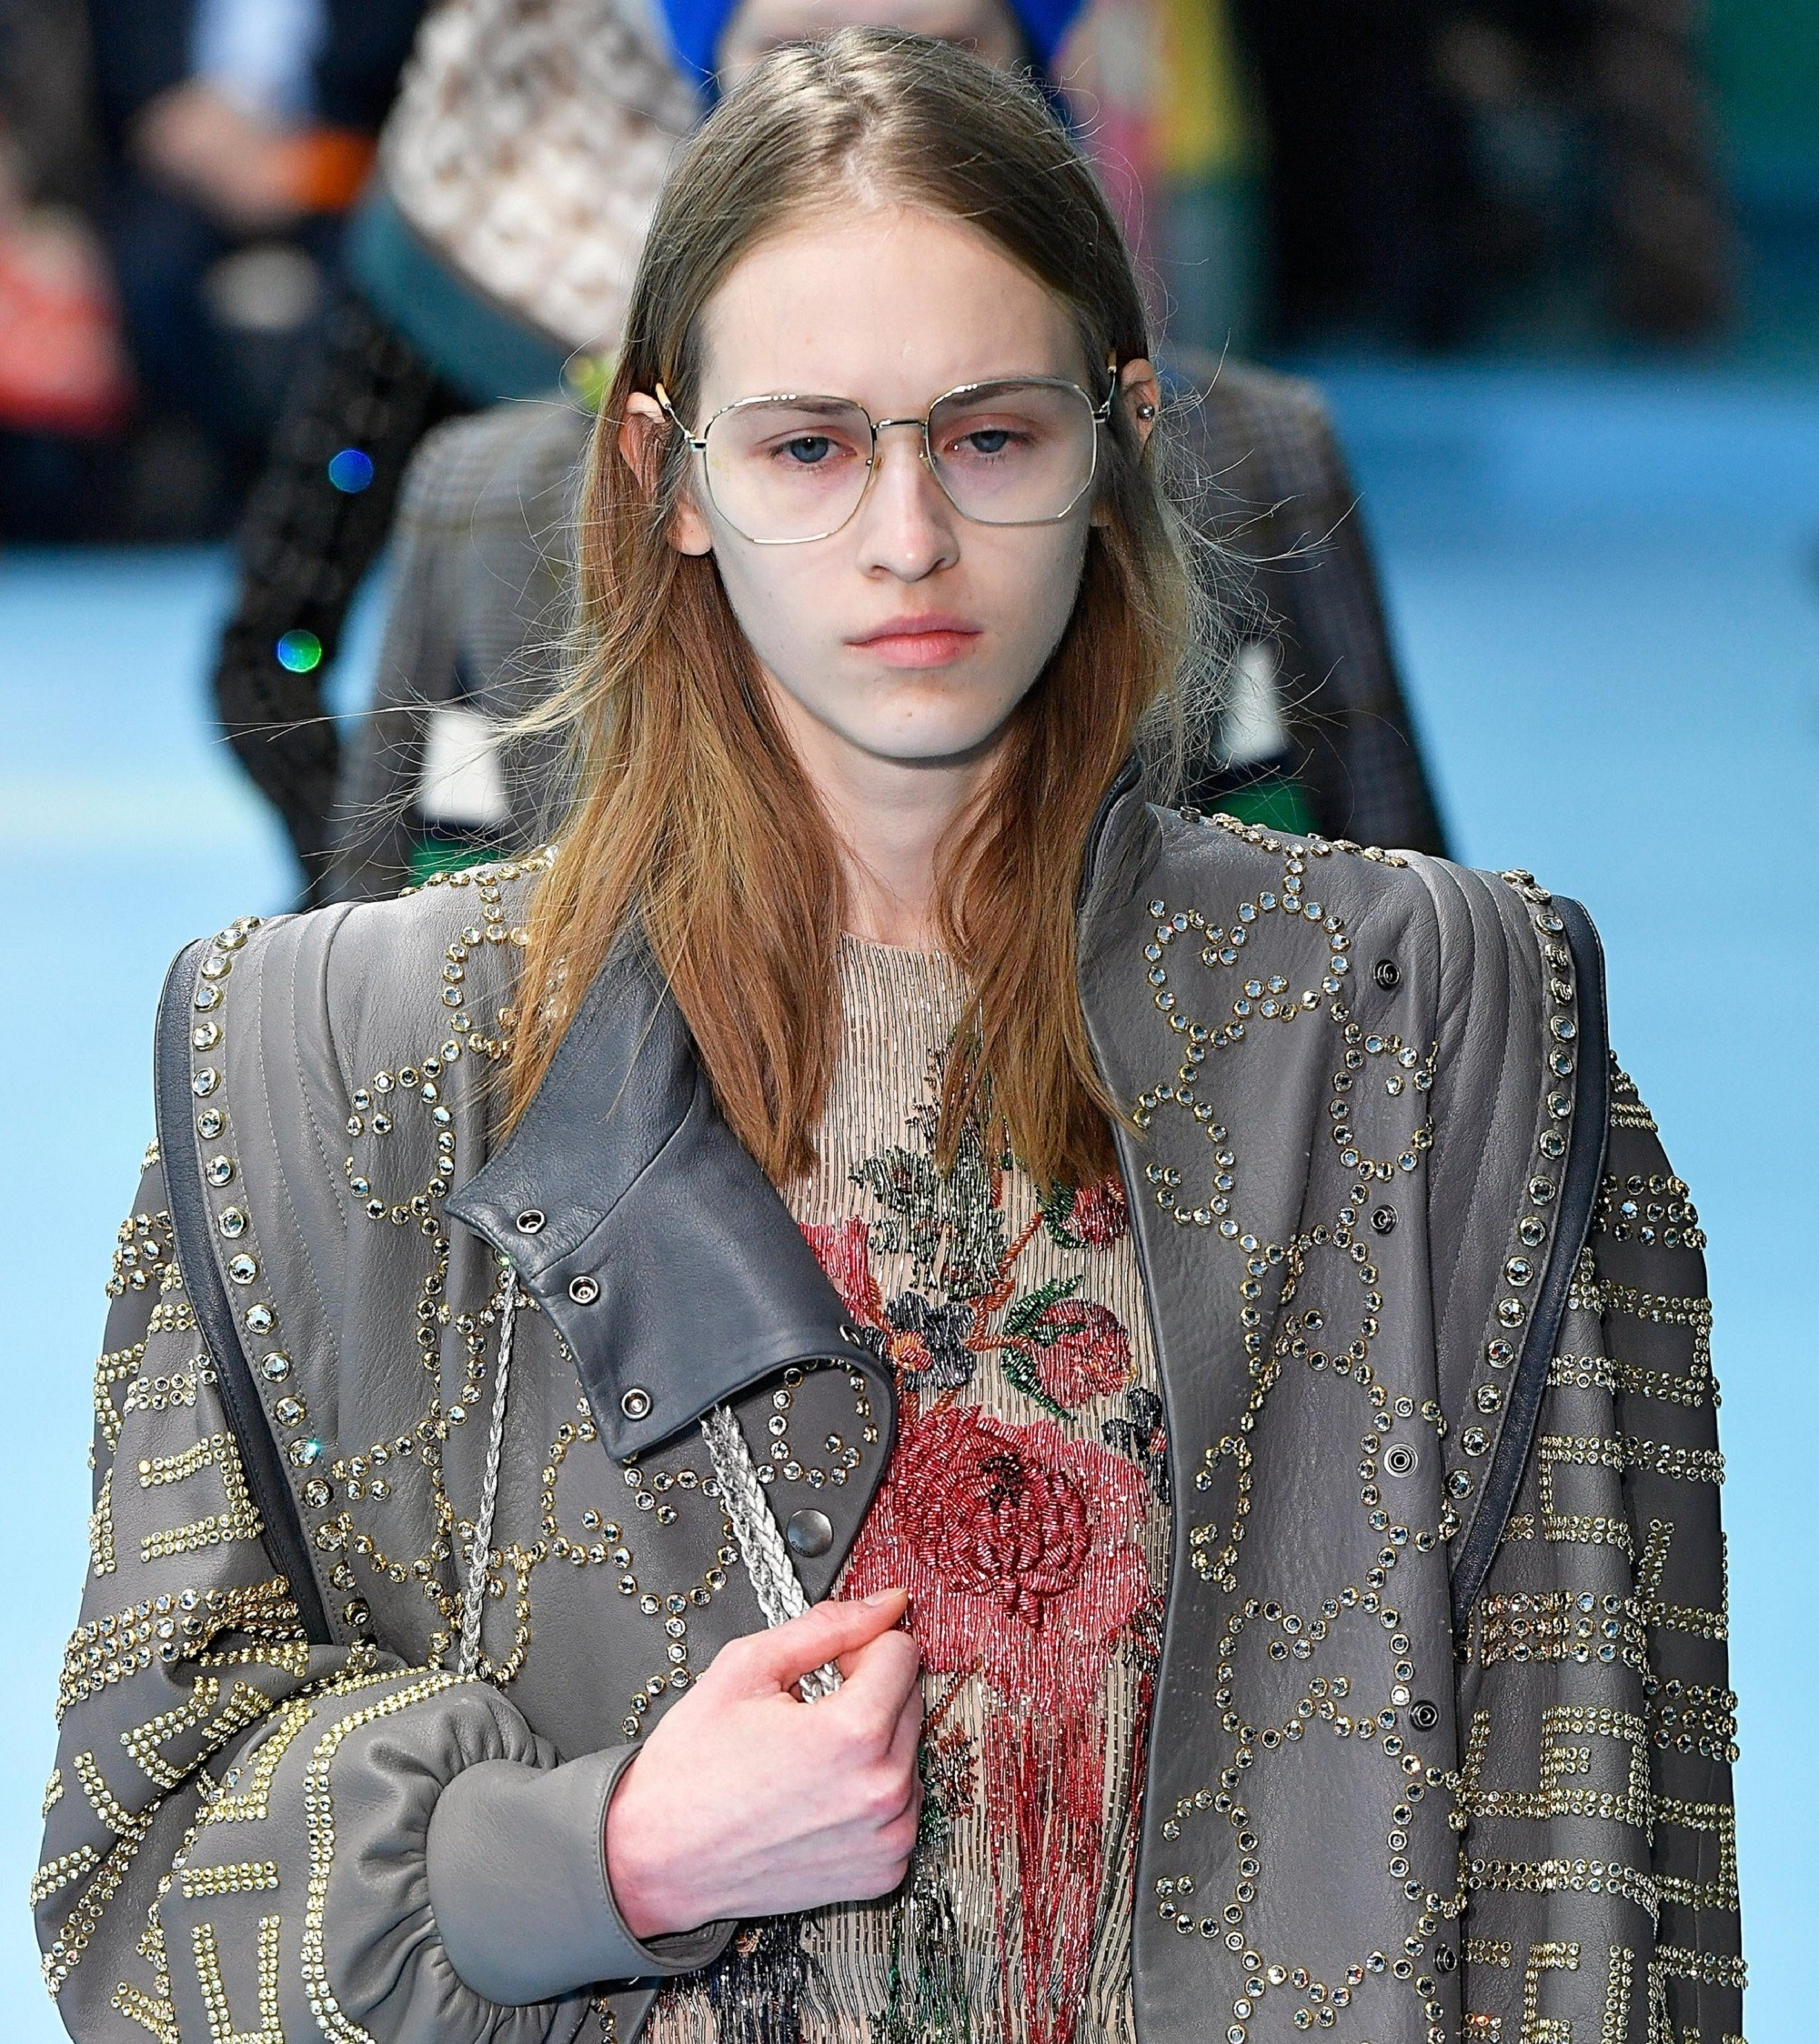 Straight hairstyle for glasses wearers